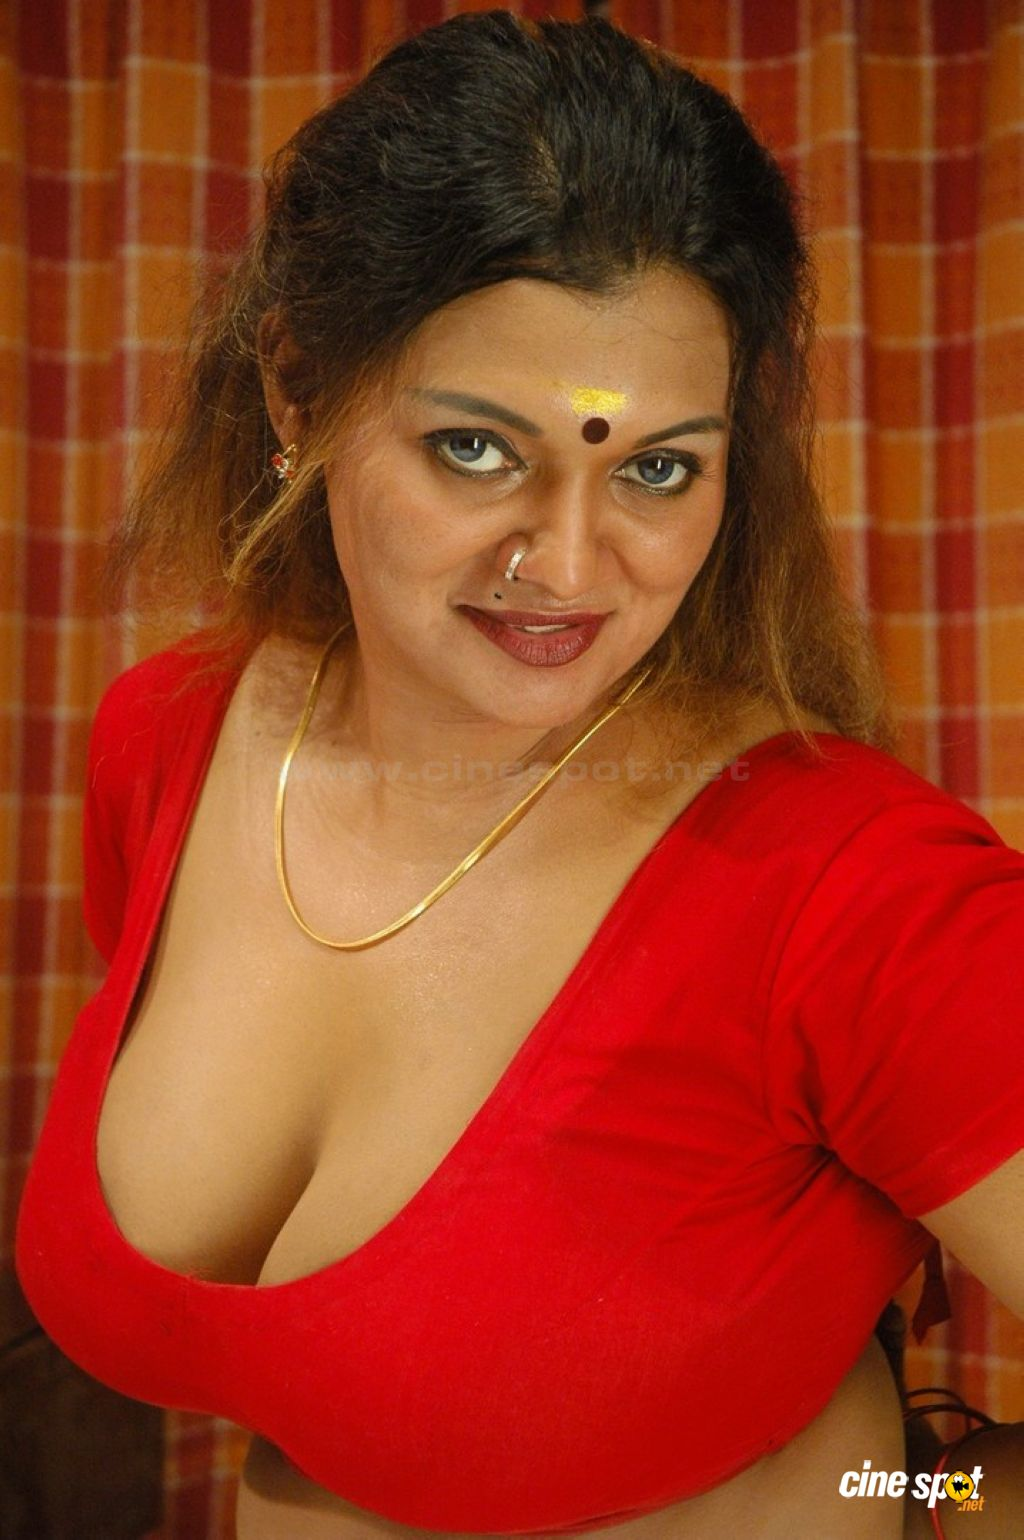 Thiruttu Sirukki Tamil Movie actress Hot Sexy spicy masala Photos Pics